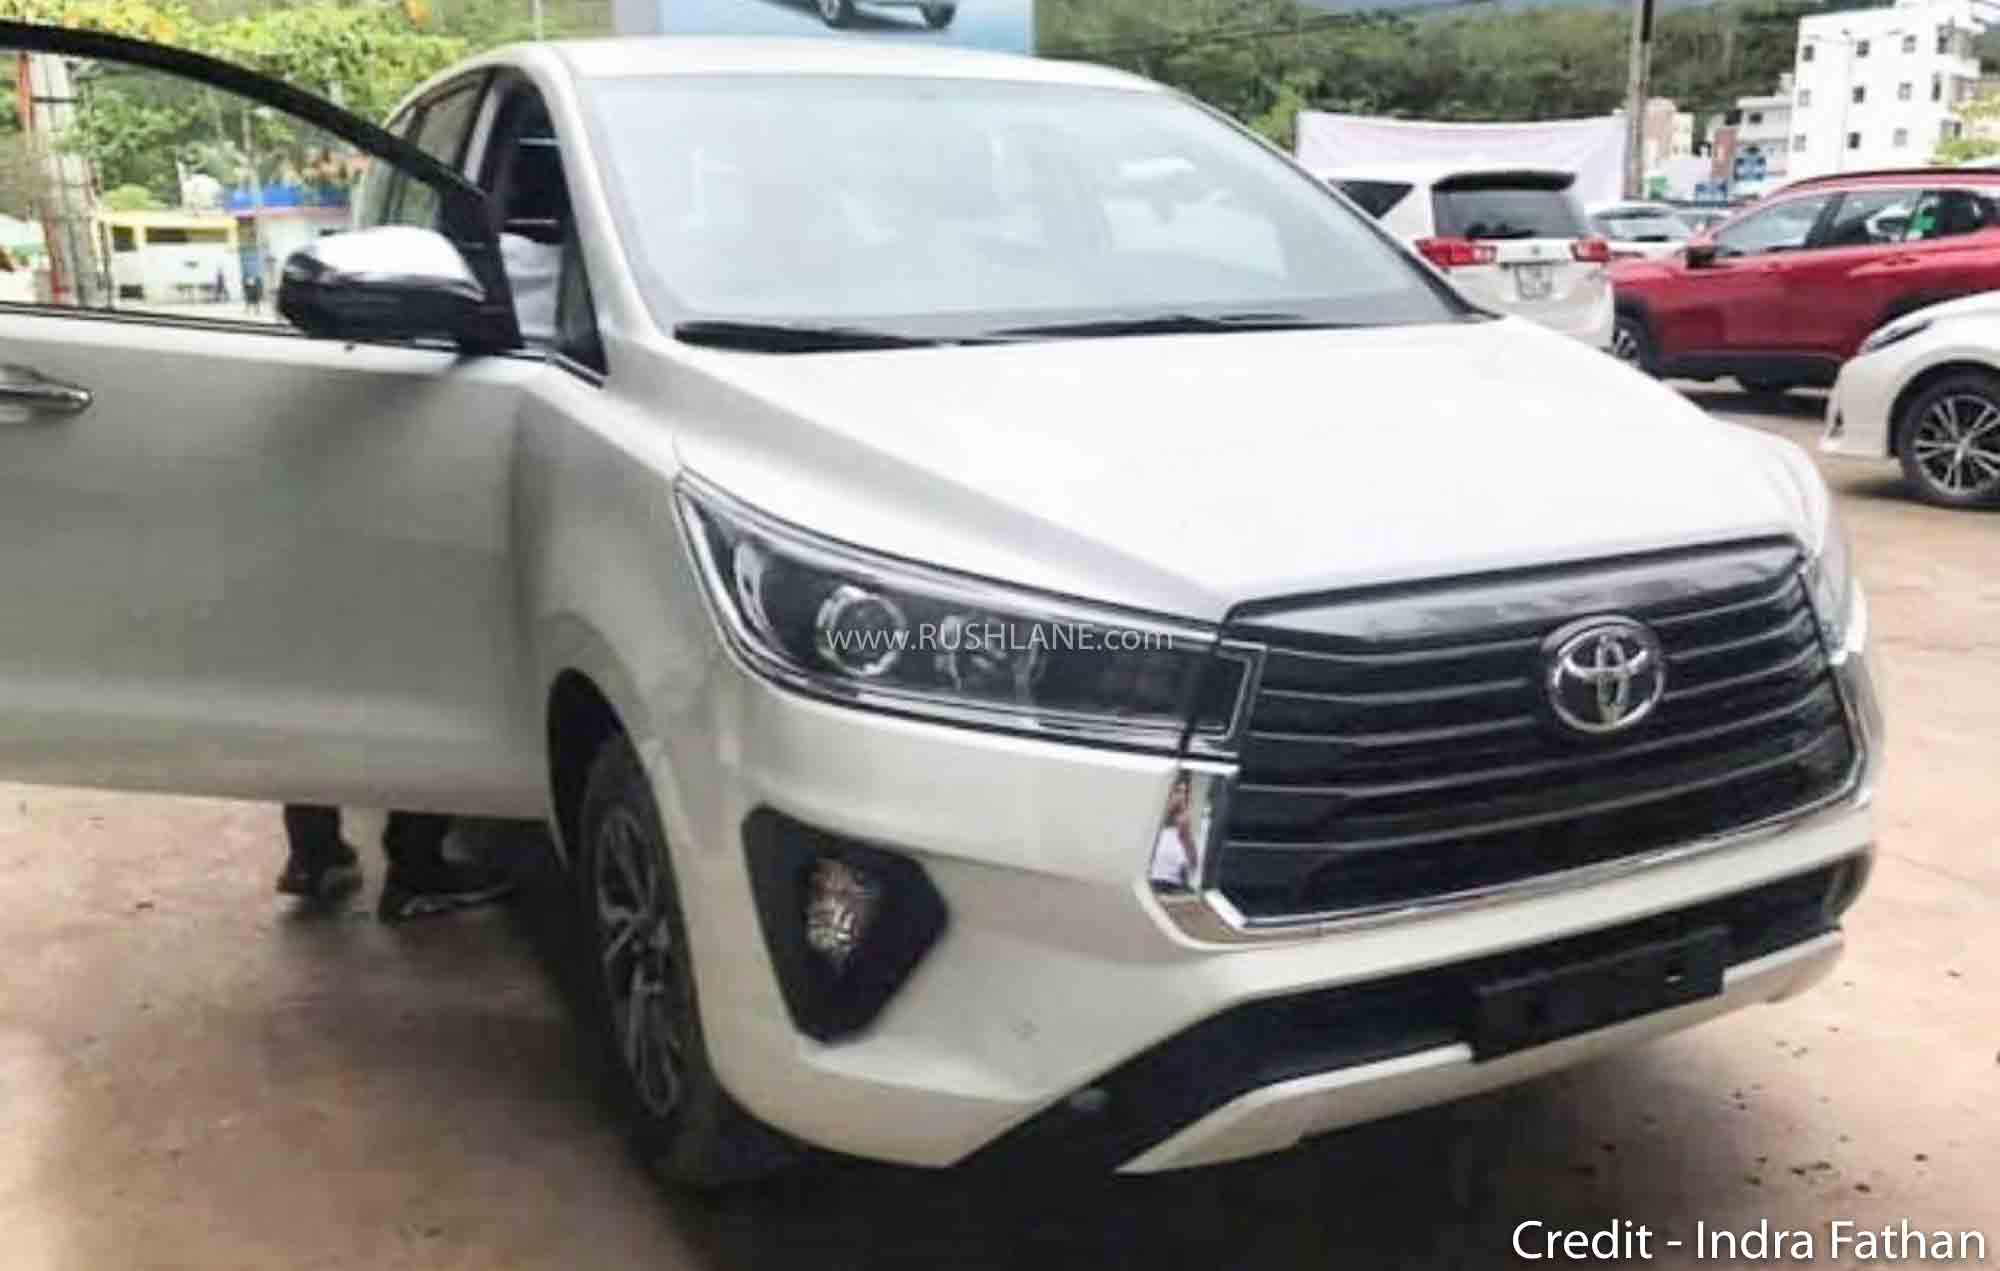 2021 toyota innova crysta spied in white colour  new